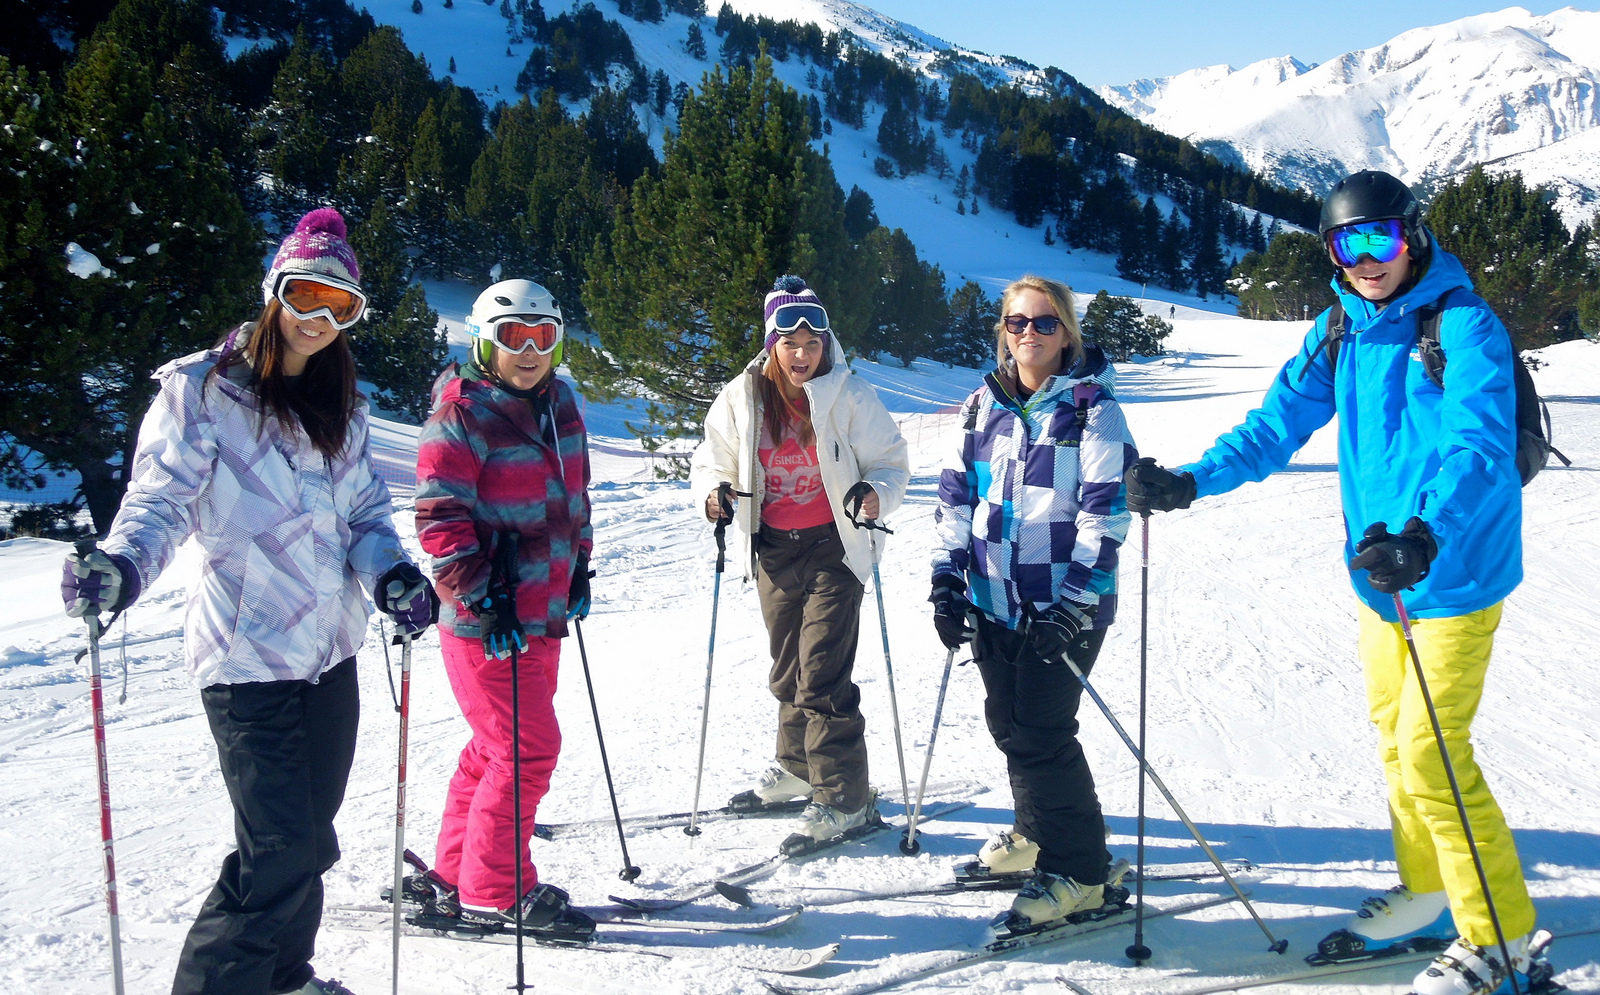 Top 8 Ski Resorts for Beginners